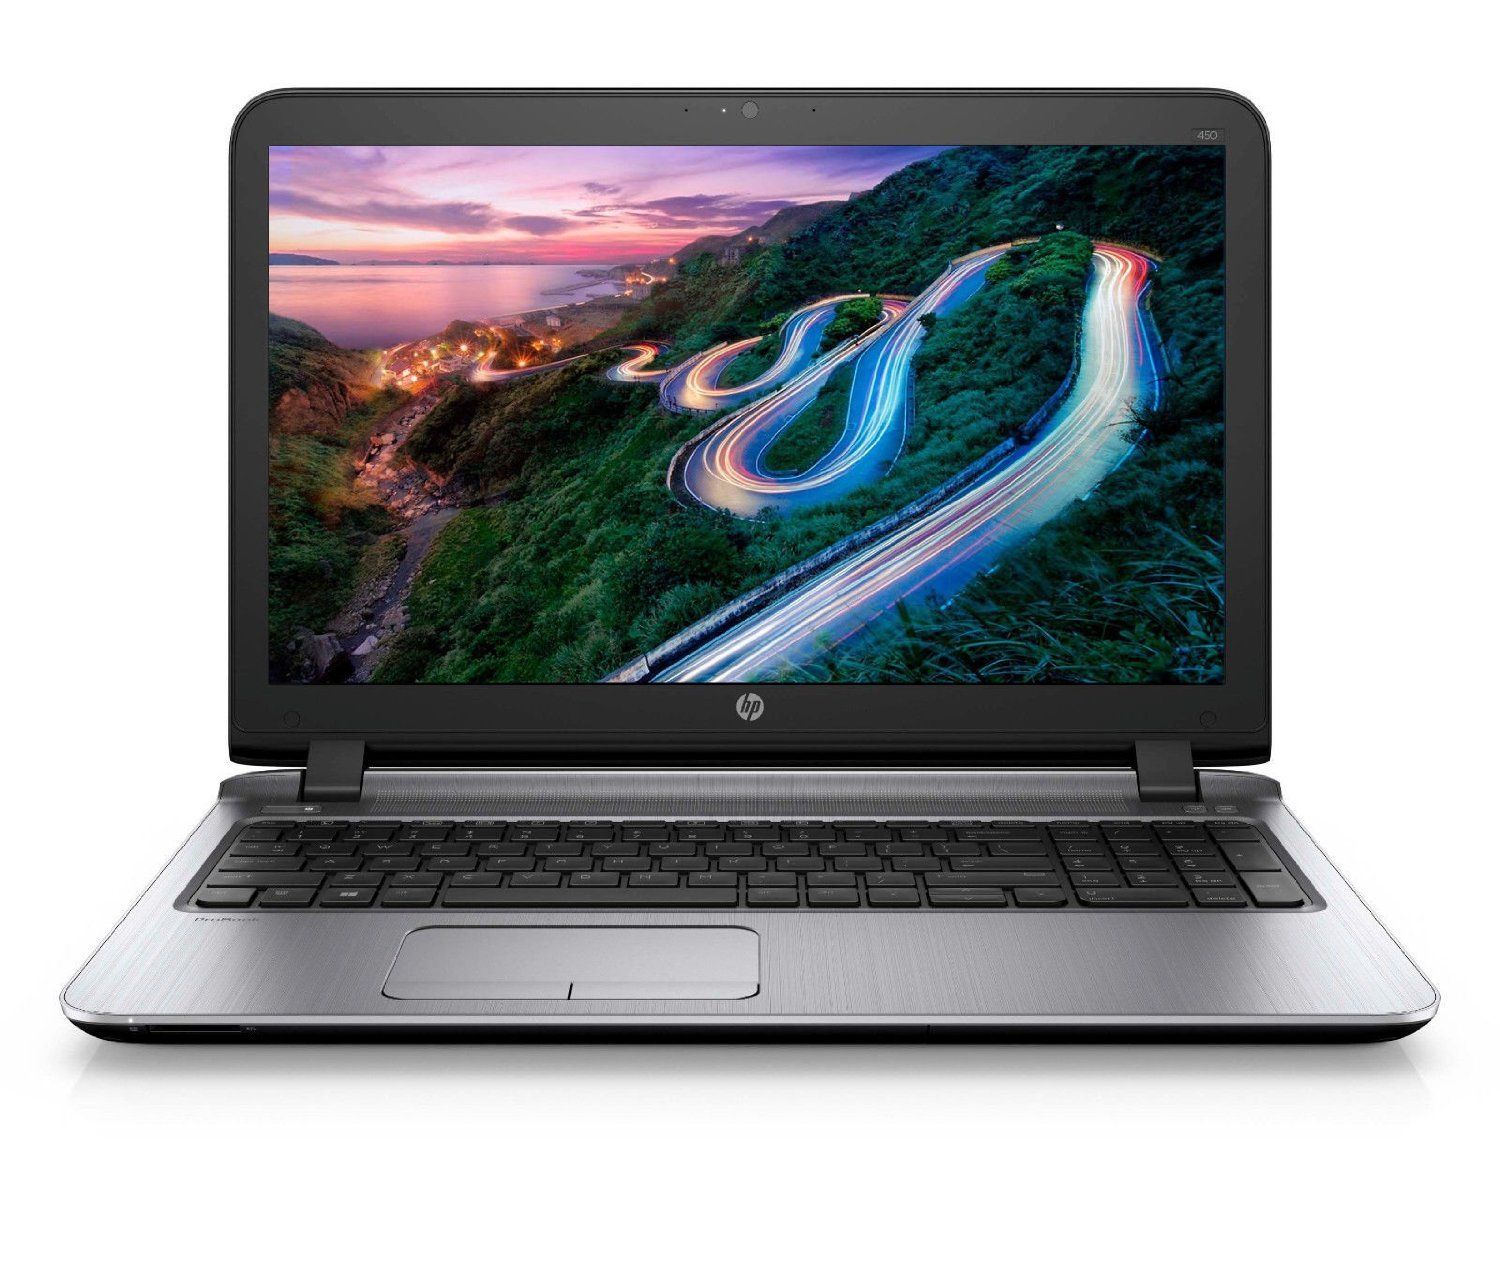 HP ProBook 450 G3 Laptop, 15 6